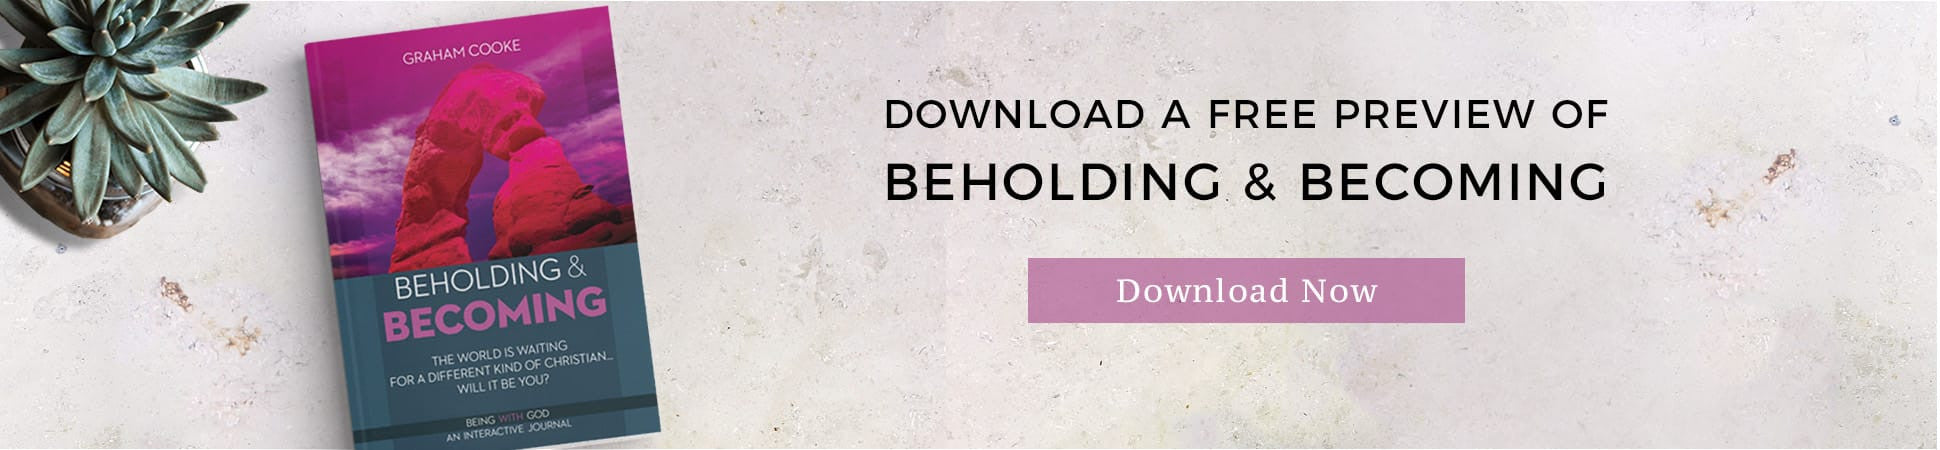 Beholding & Becoming FREE preview